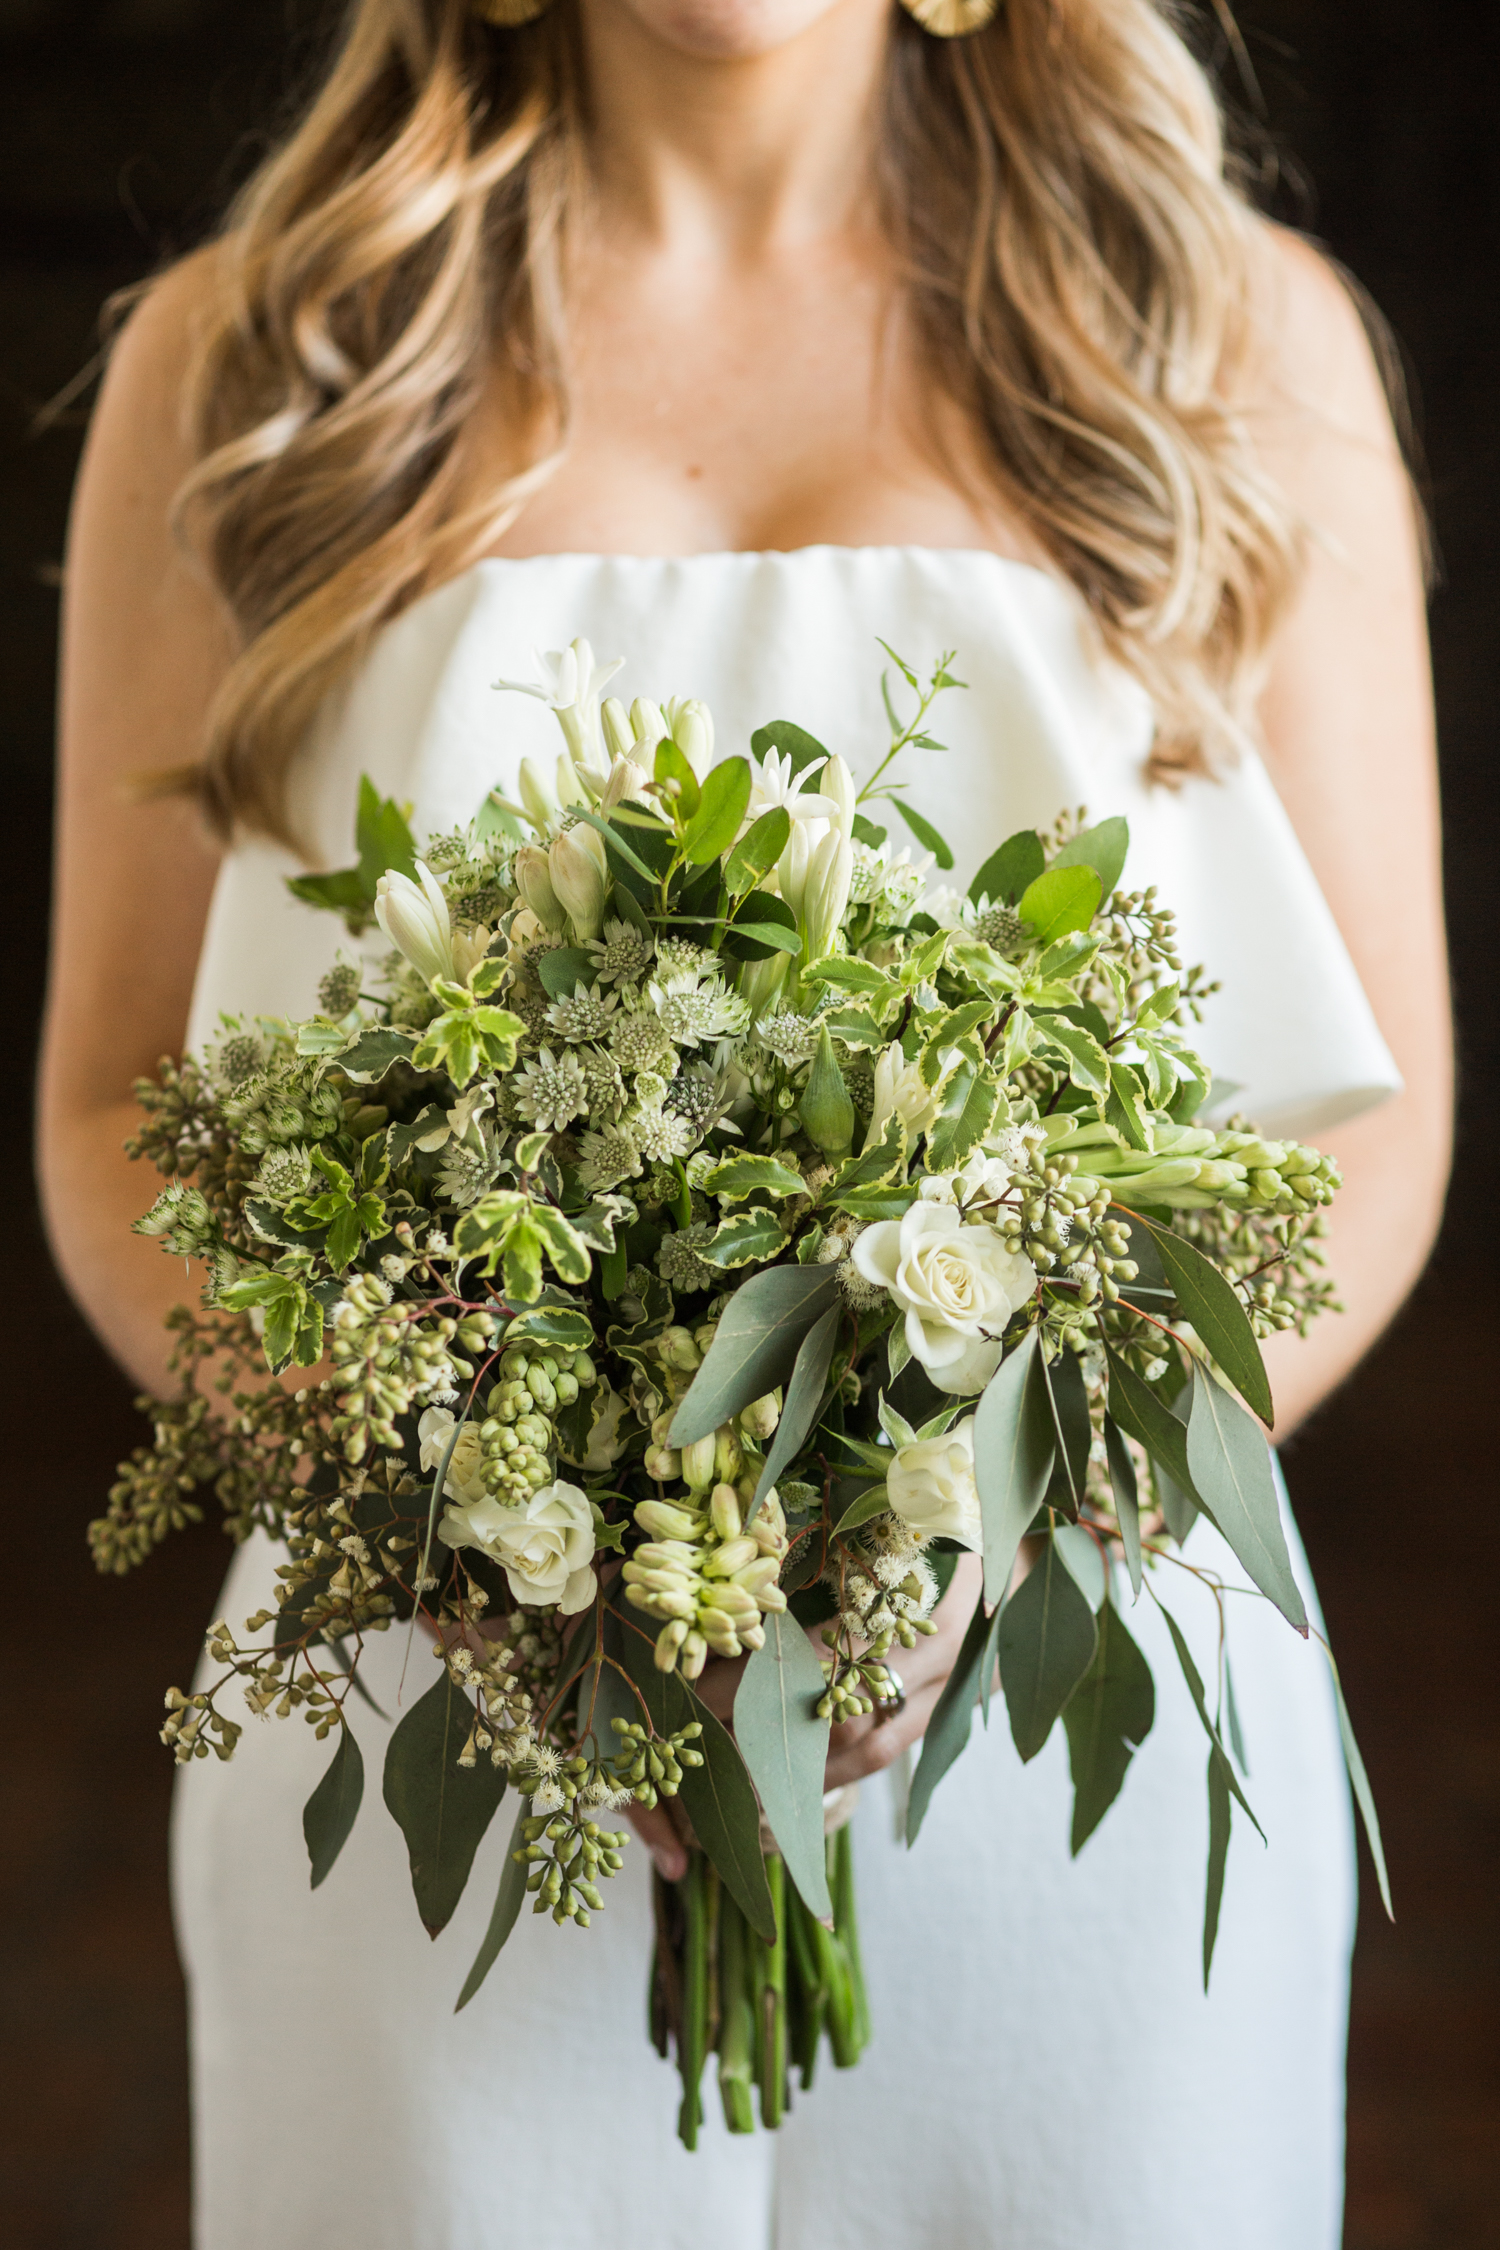 Classic Bridal Bouquet in Green and White